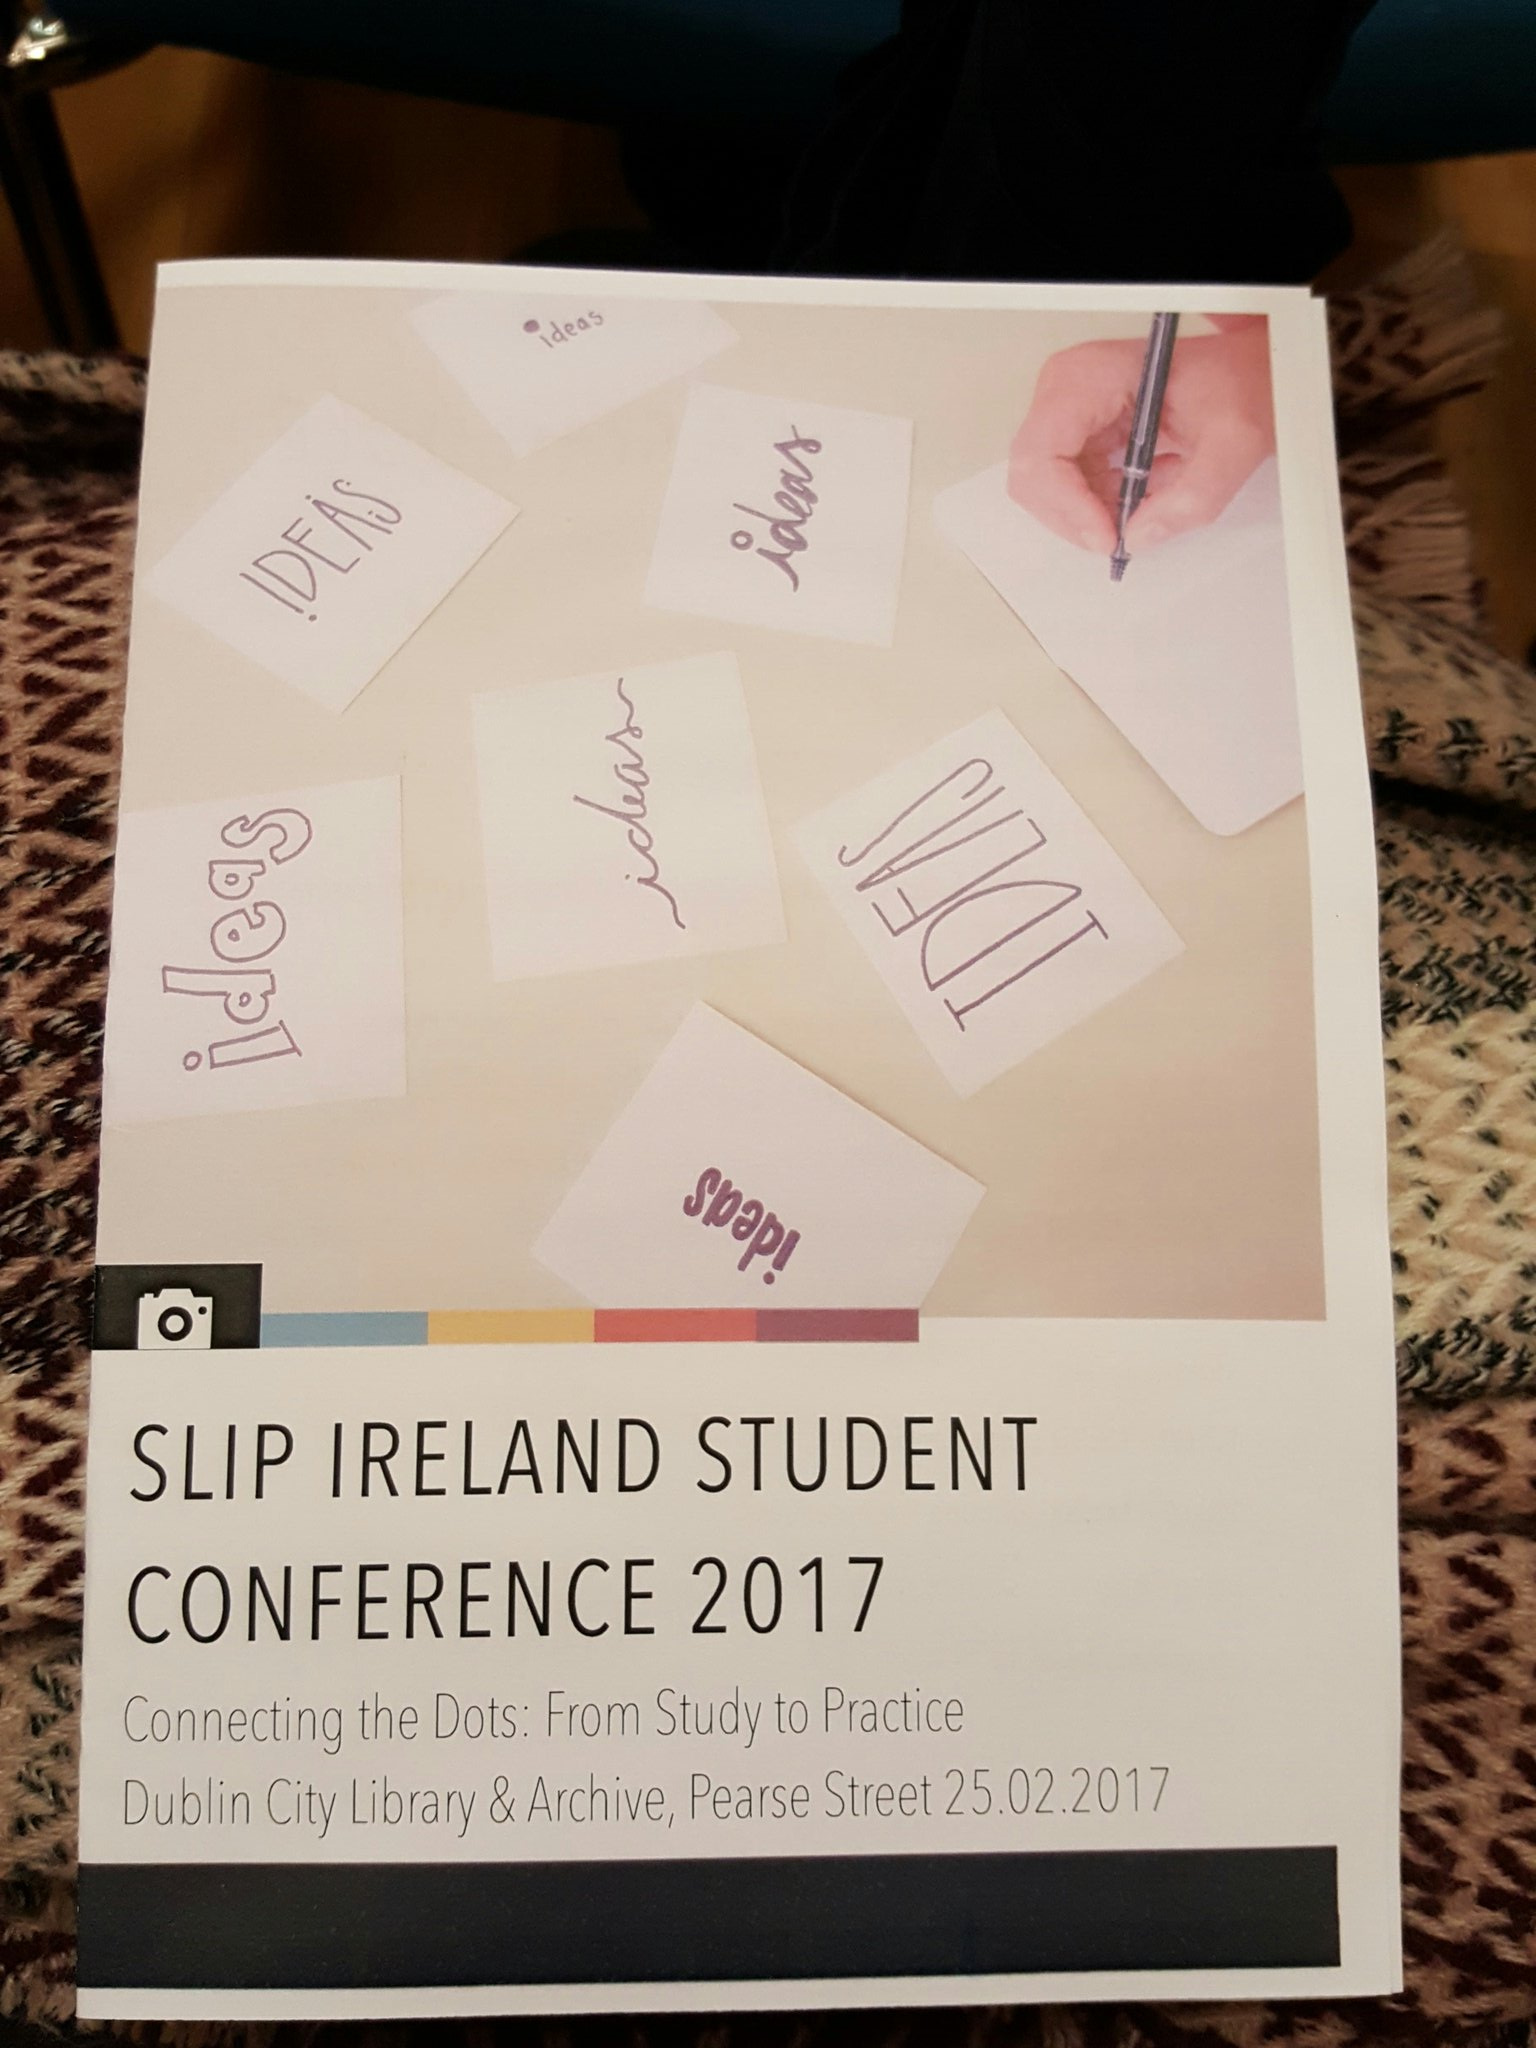 Getting ready to kick off at the SLIP 2017 conference #excited #SLIP2017 https://t.co/RUnncSa3K9